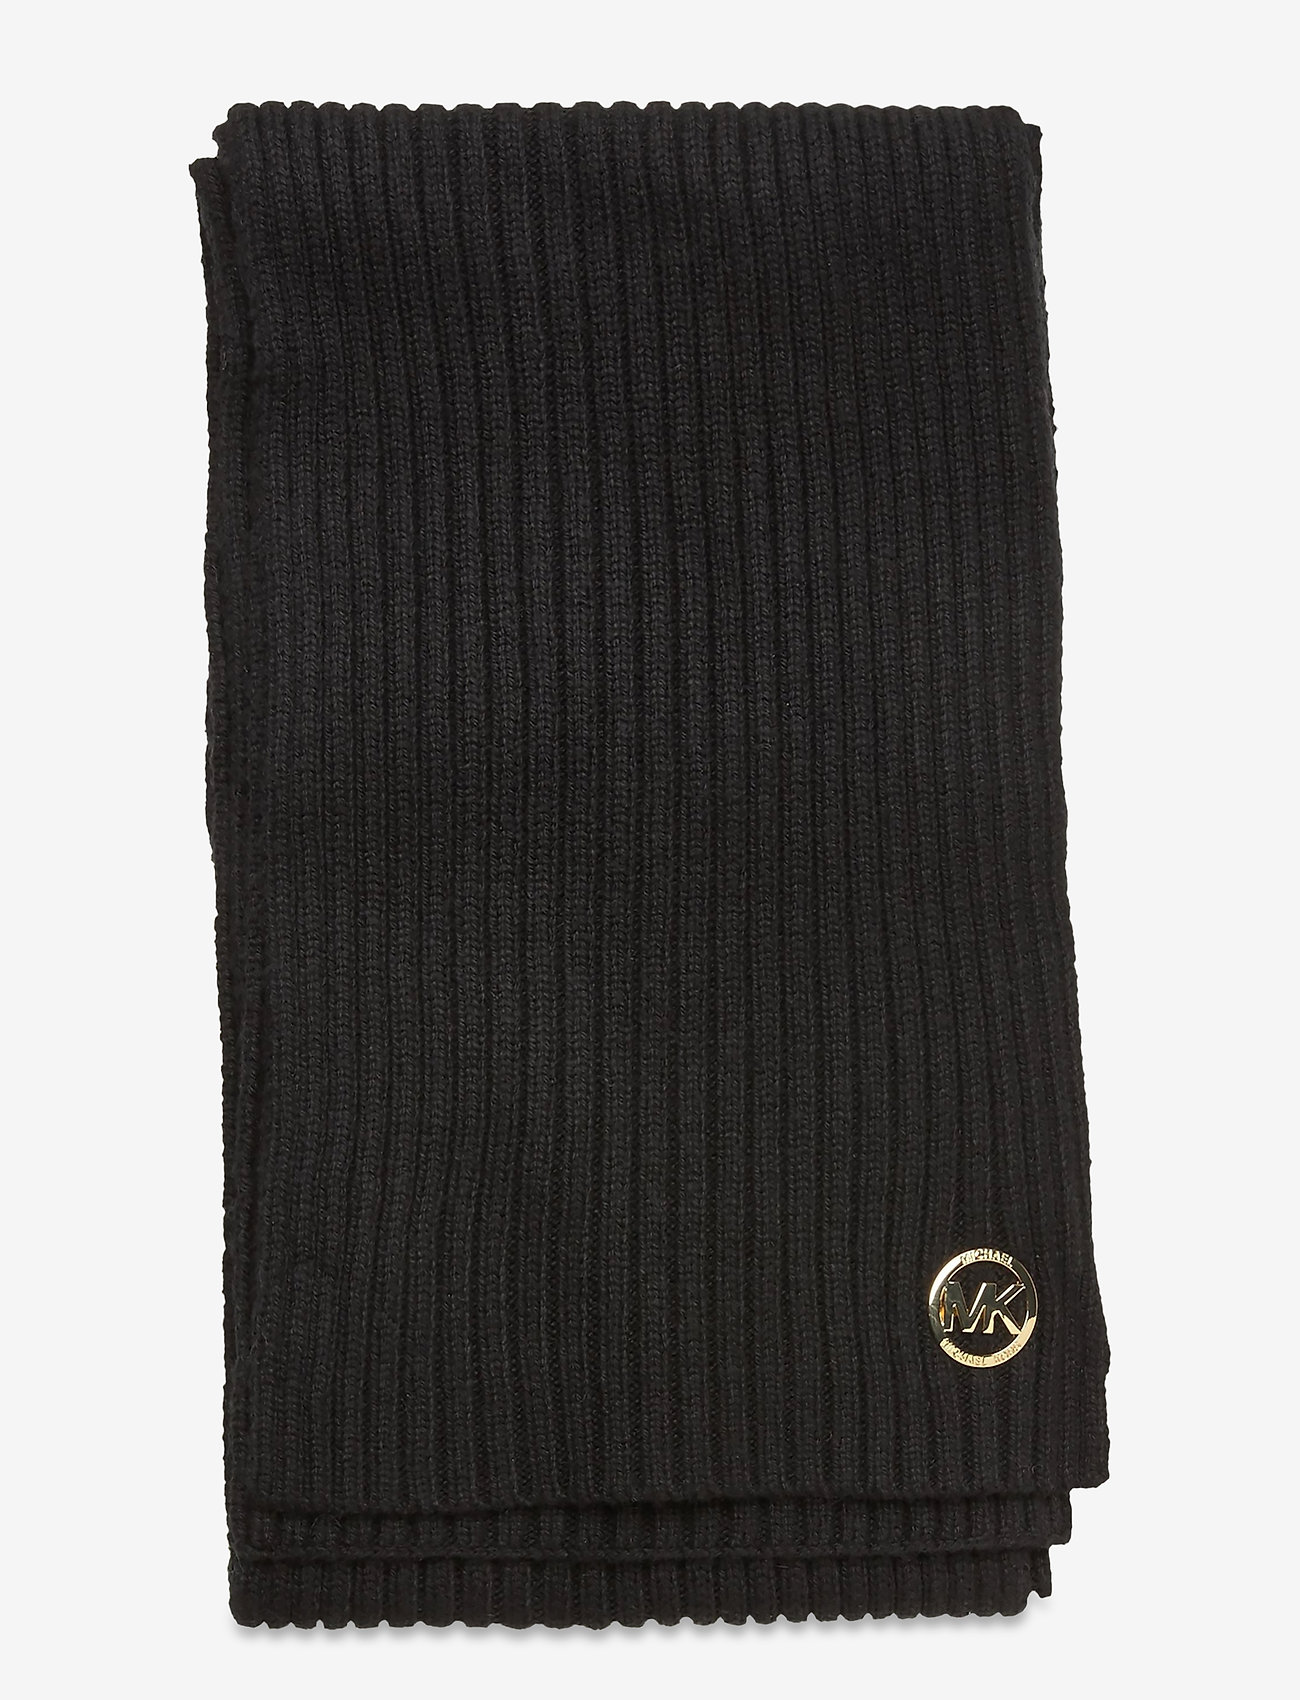 Michael Kors - MK PATCH RIB SCARF - sjaals - black/gold - 1